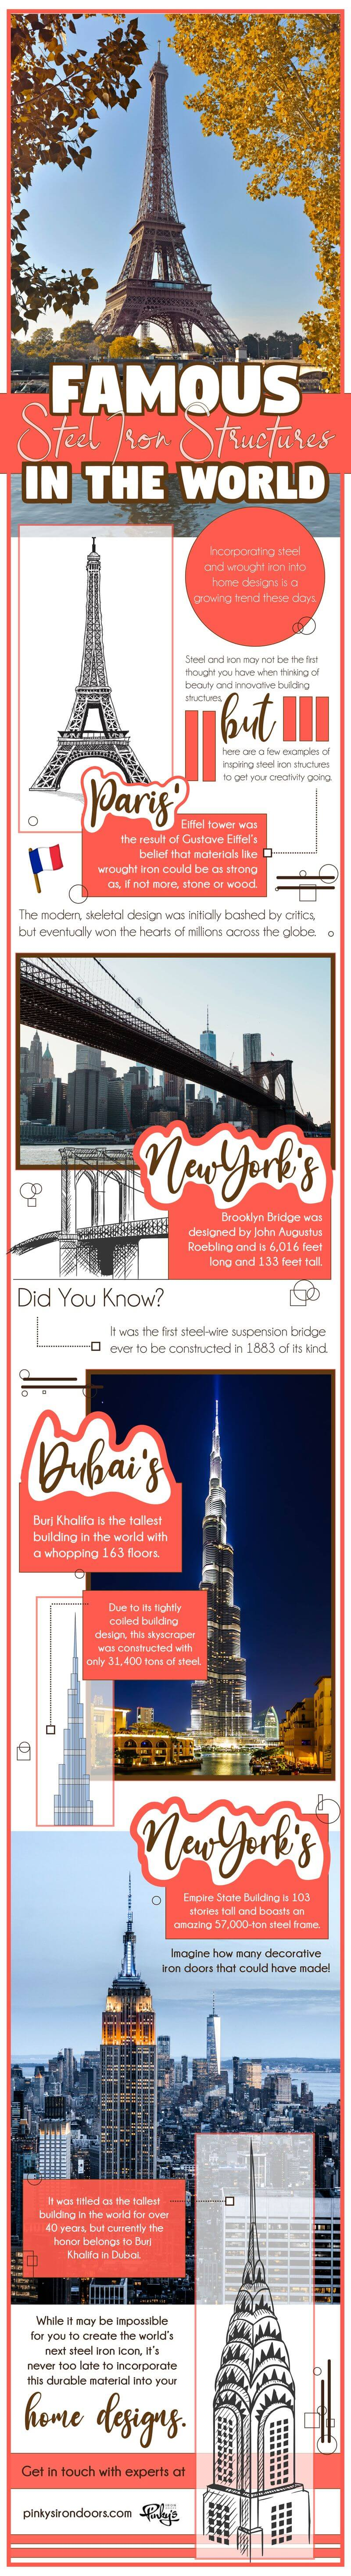 Famous Steel Iron Structures In The World